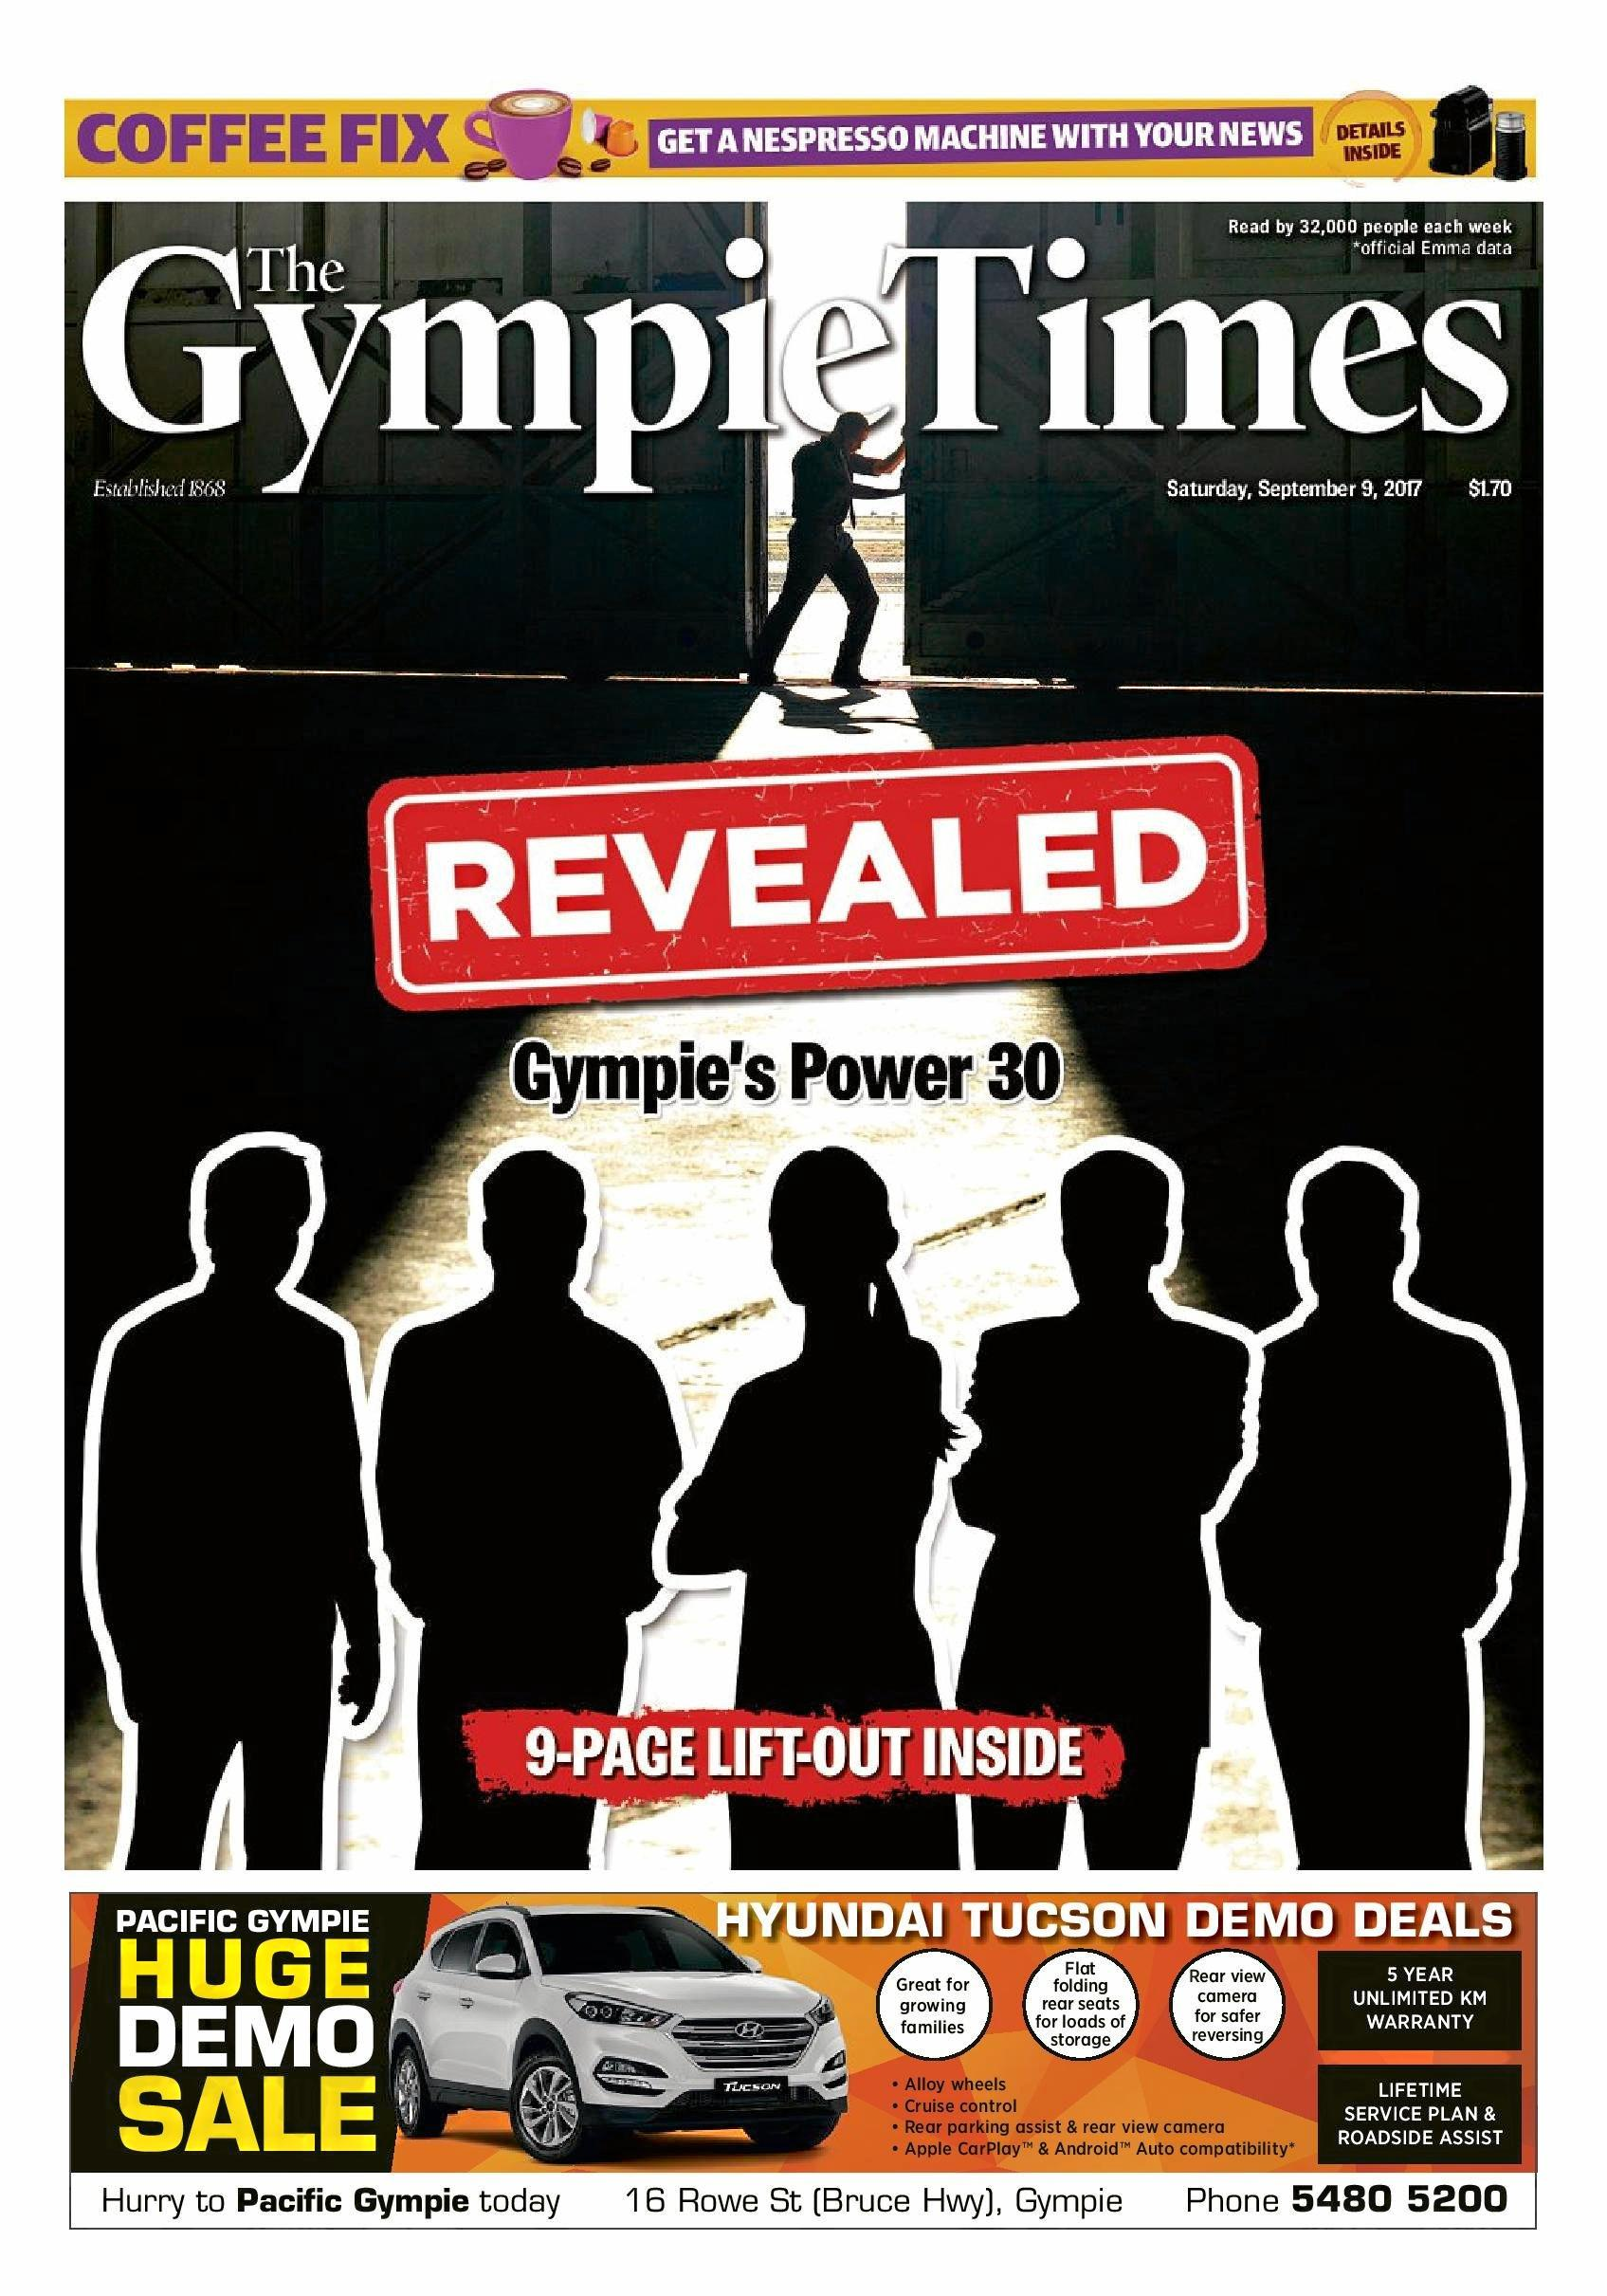 The front page of The Gympie Times in 2017 when the full Power 30 list was revealed.